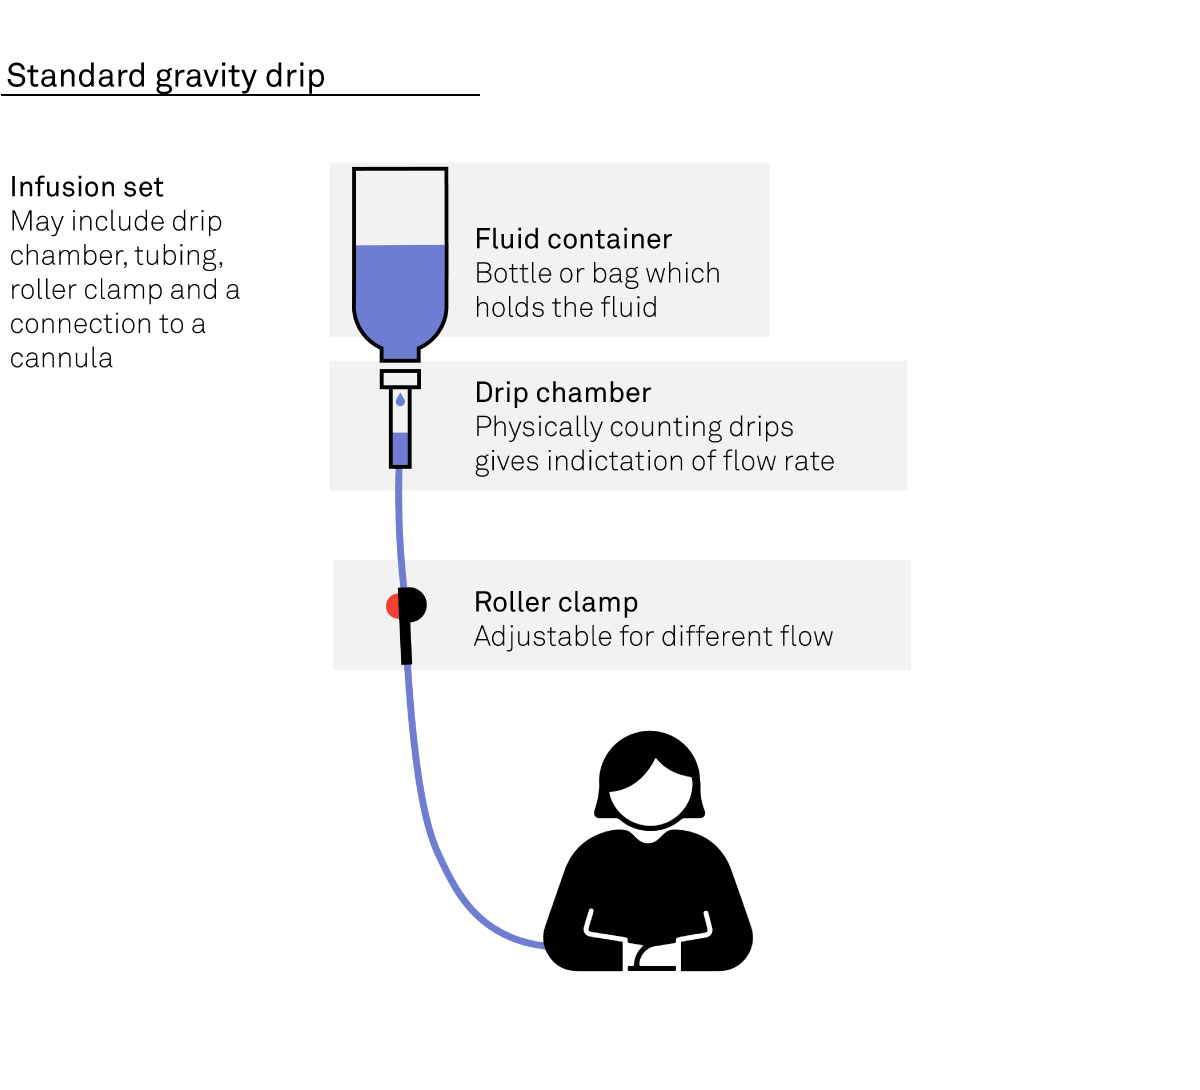 diagram of how a standard gravity drip infusion pump works